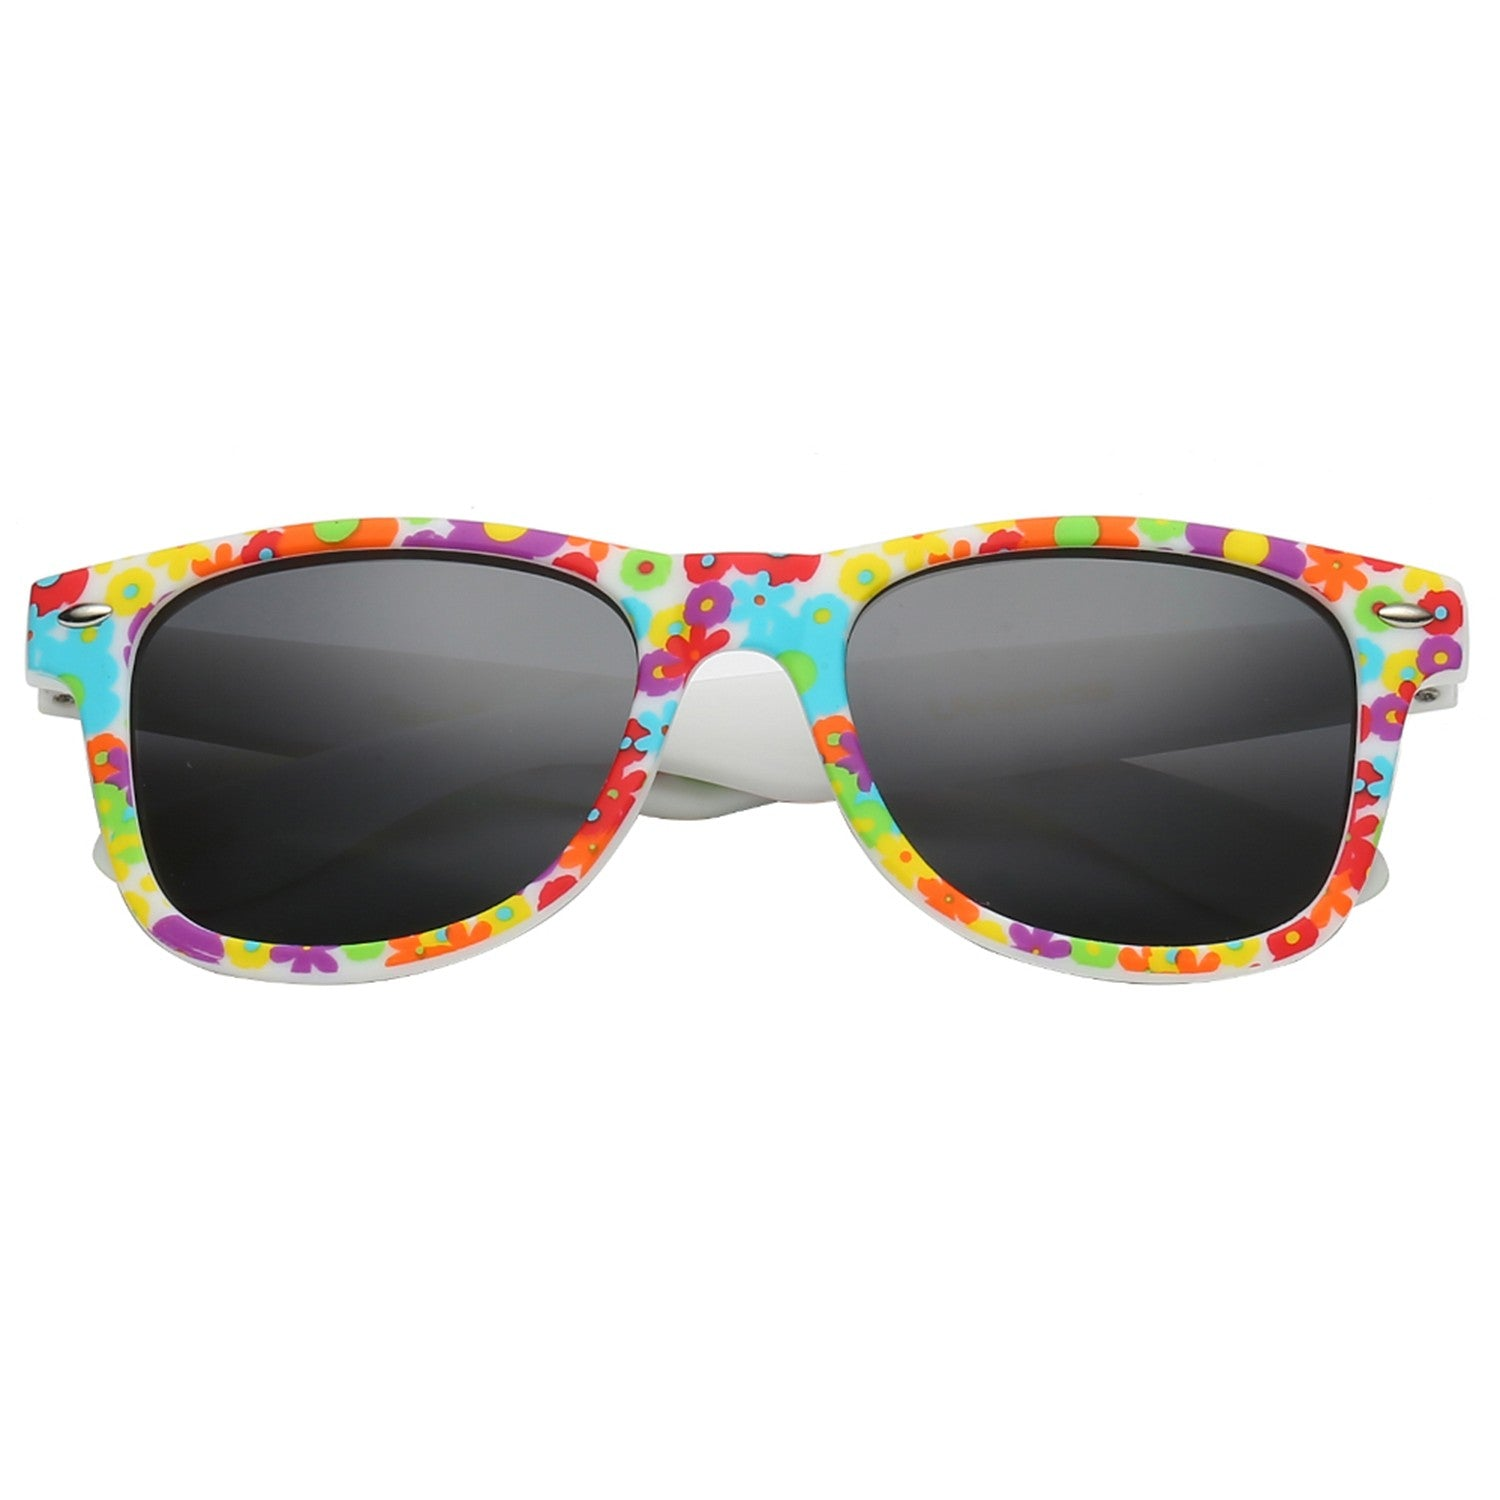 Polarspex Polarized 80's Retro Style Kids Sunglasses with Rubberized Hawaiian Floral Frames and Polarized Smoke Lenses for Boys and Girls